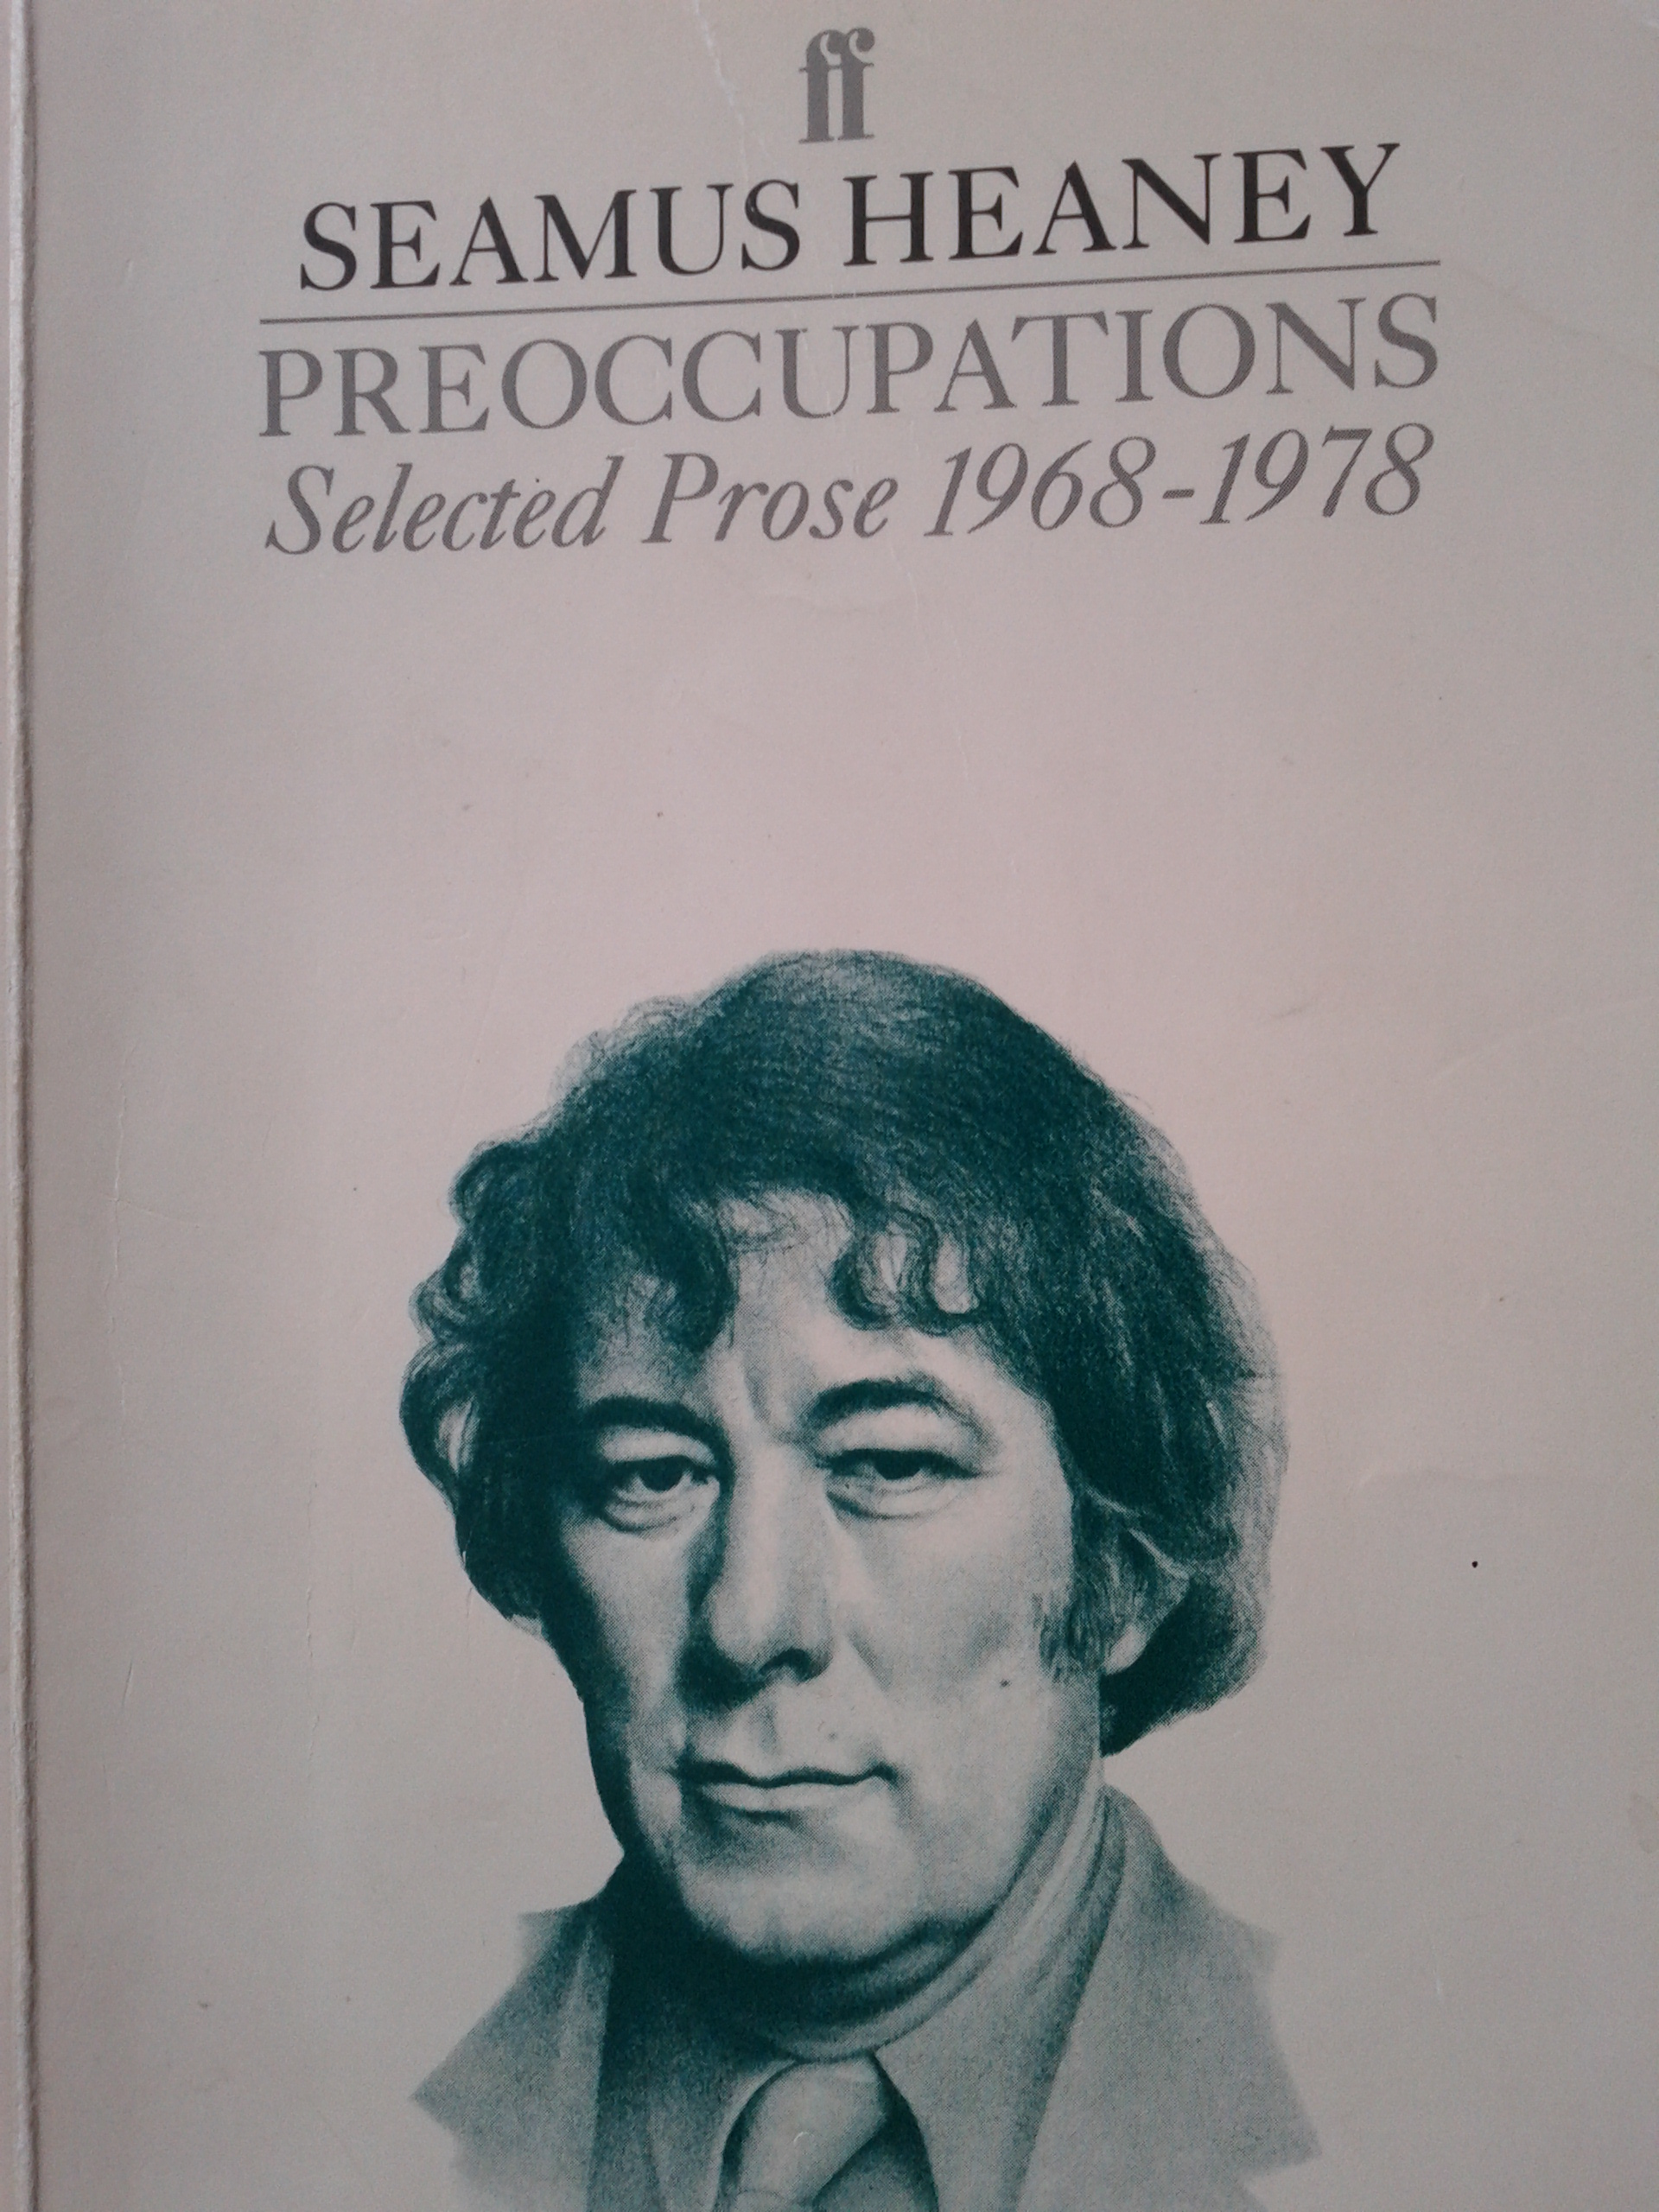 seamus heaney omphalos anthony wilson heaney s pedagogy